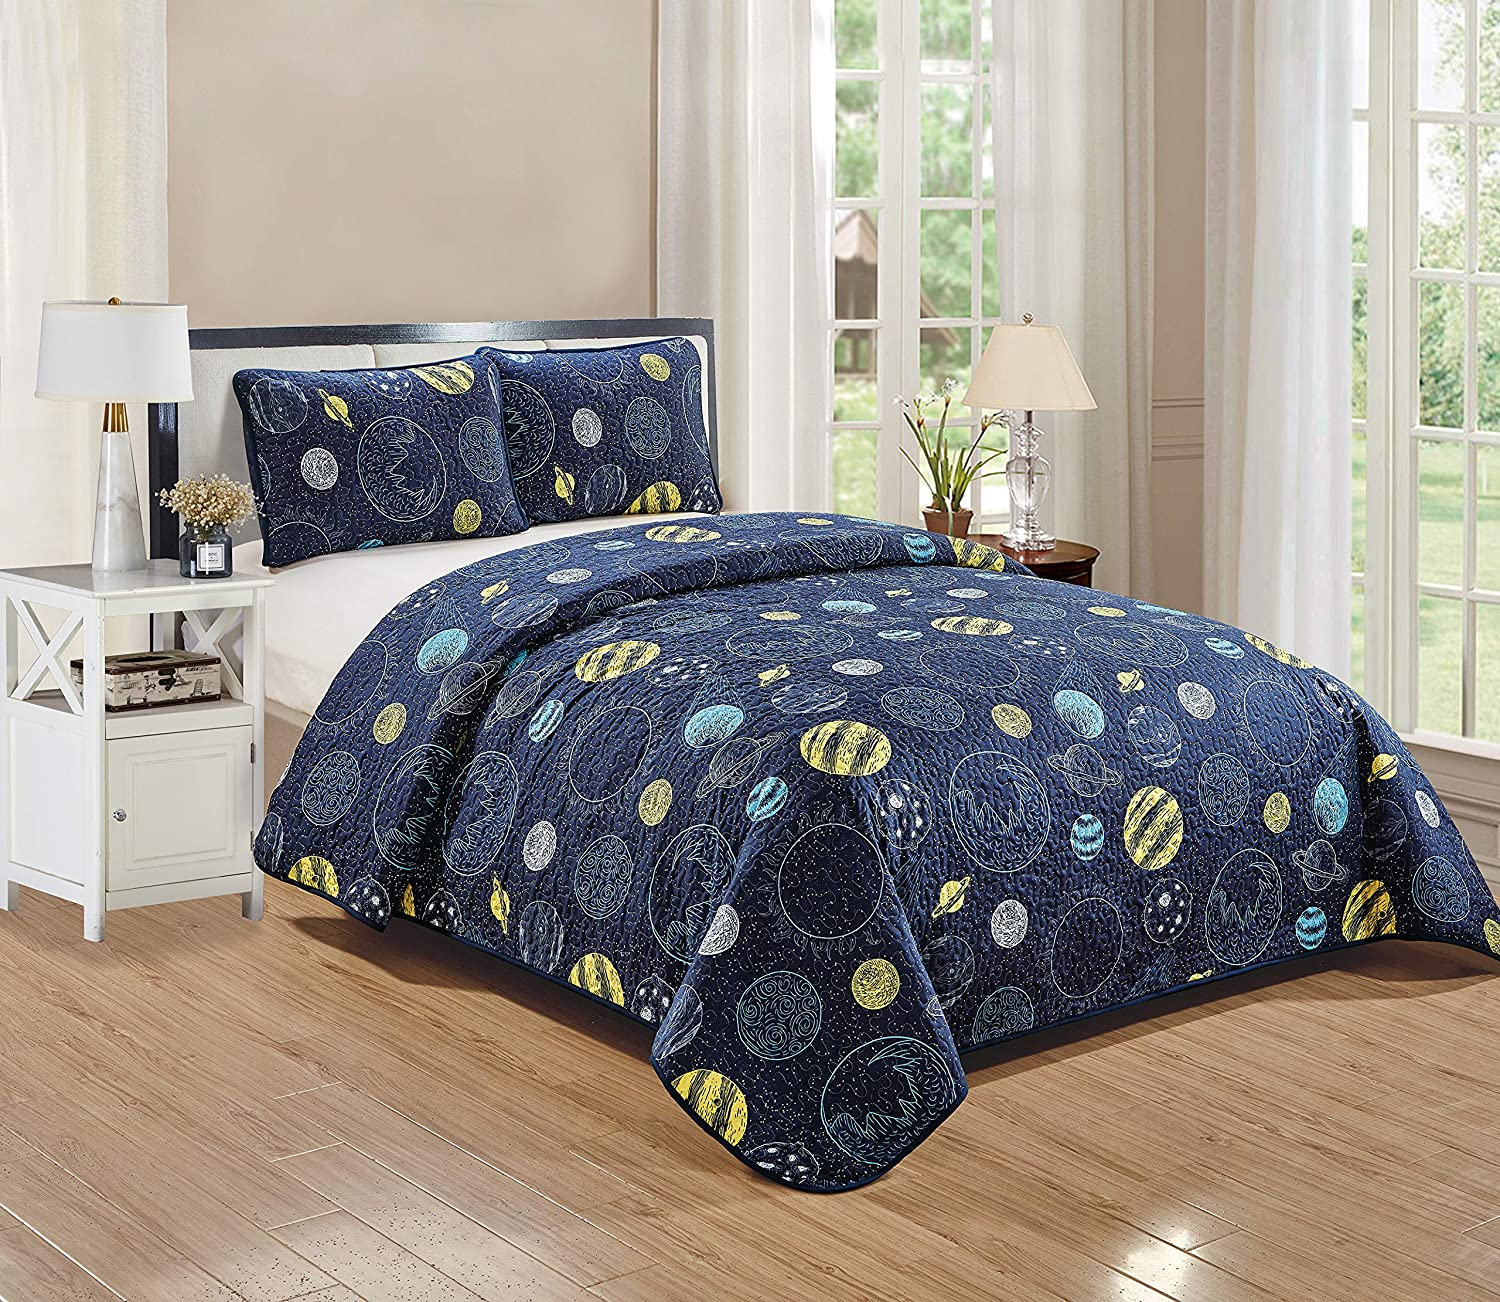 Better Home Style Space Planet Galaxy World Cosmos Kids/Boys/Toddler Navy Blue and Yellow 2 Piece Coverlet Bedspread Quilt Set with Pillowcases # Little Galaxy (Twin)